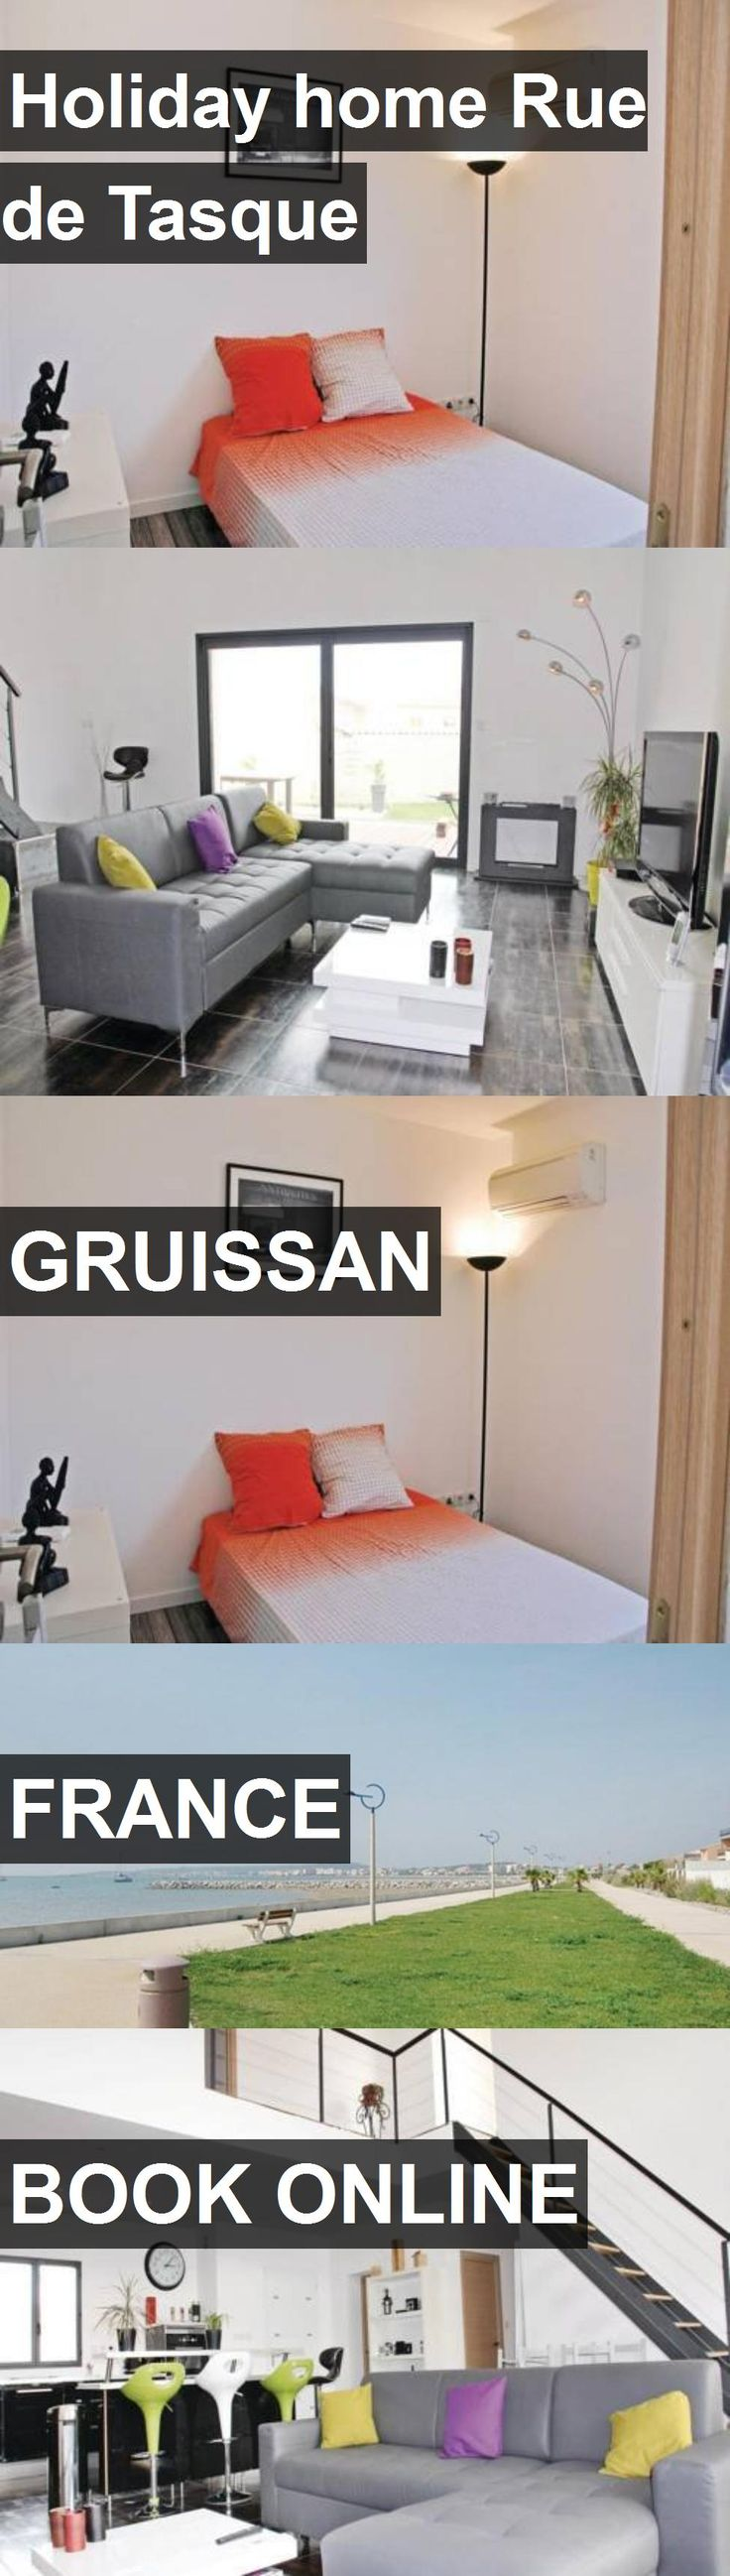 Hotel Holiday home Rue de Tasque in Gruissan, France. For more information, photos, reviews and best prices please follow the link. #France #Gruissan #travel #vacation #hotel